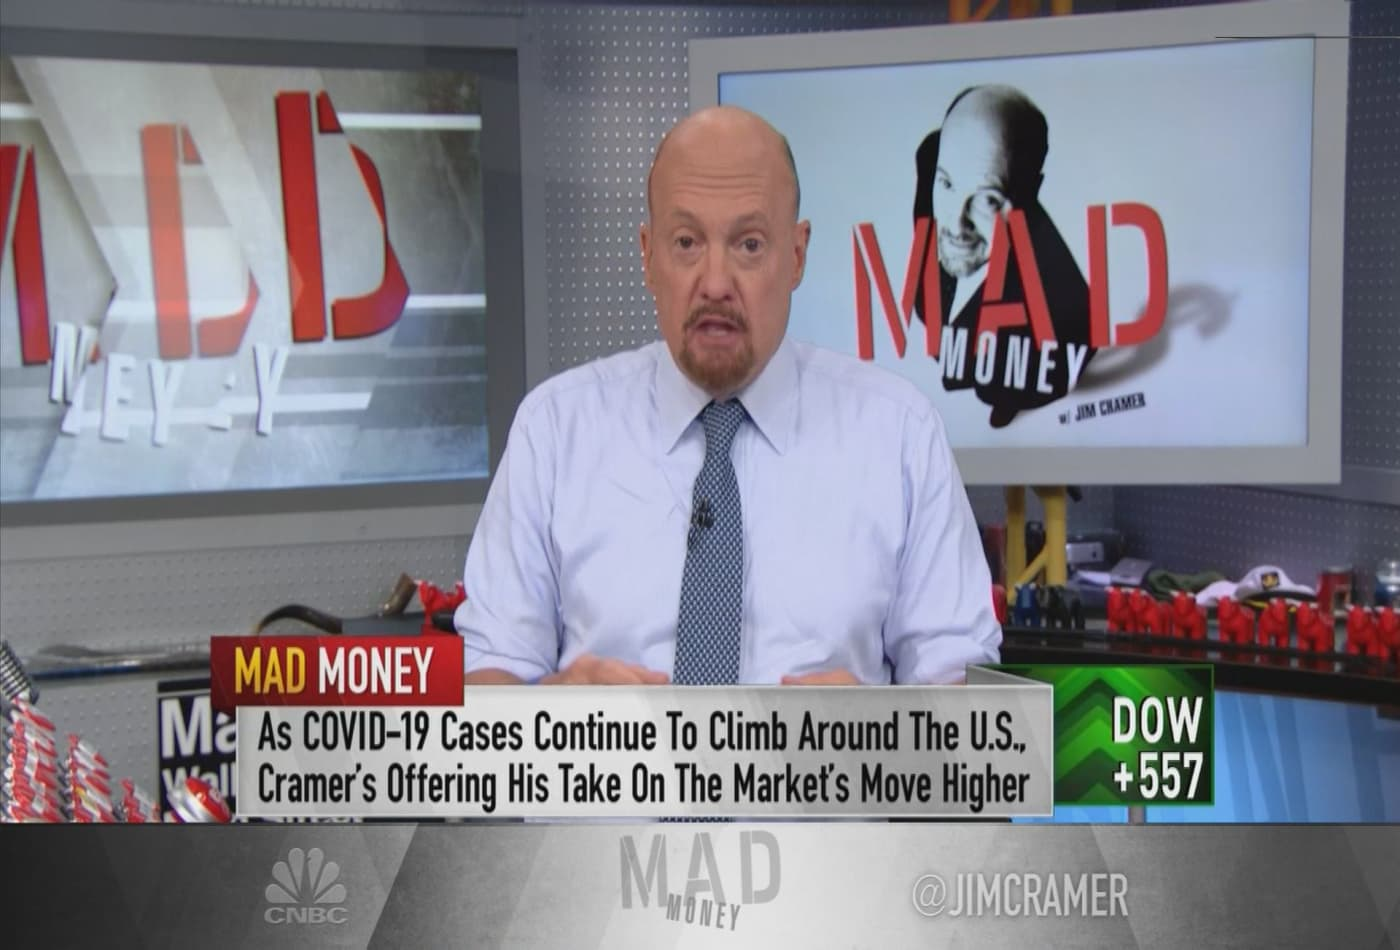 Jim Cramer: Wall Street is divided into four camps